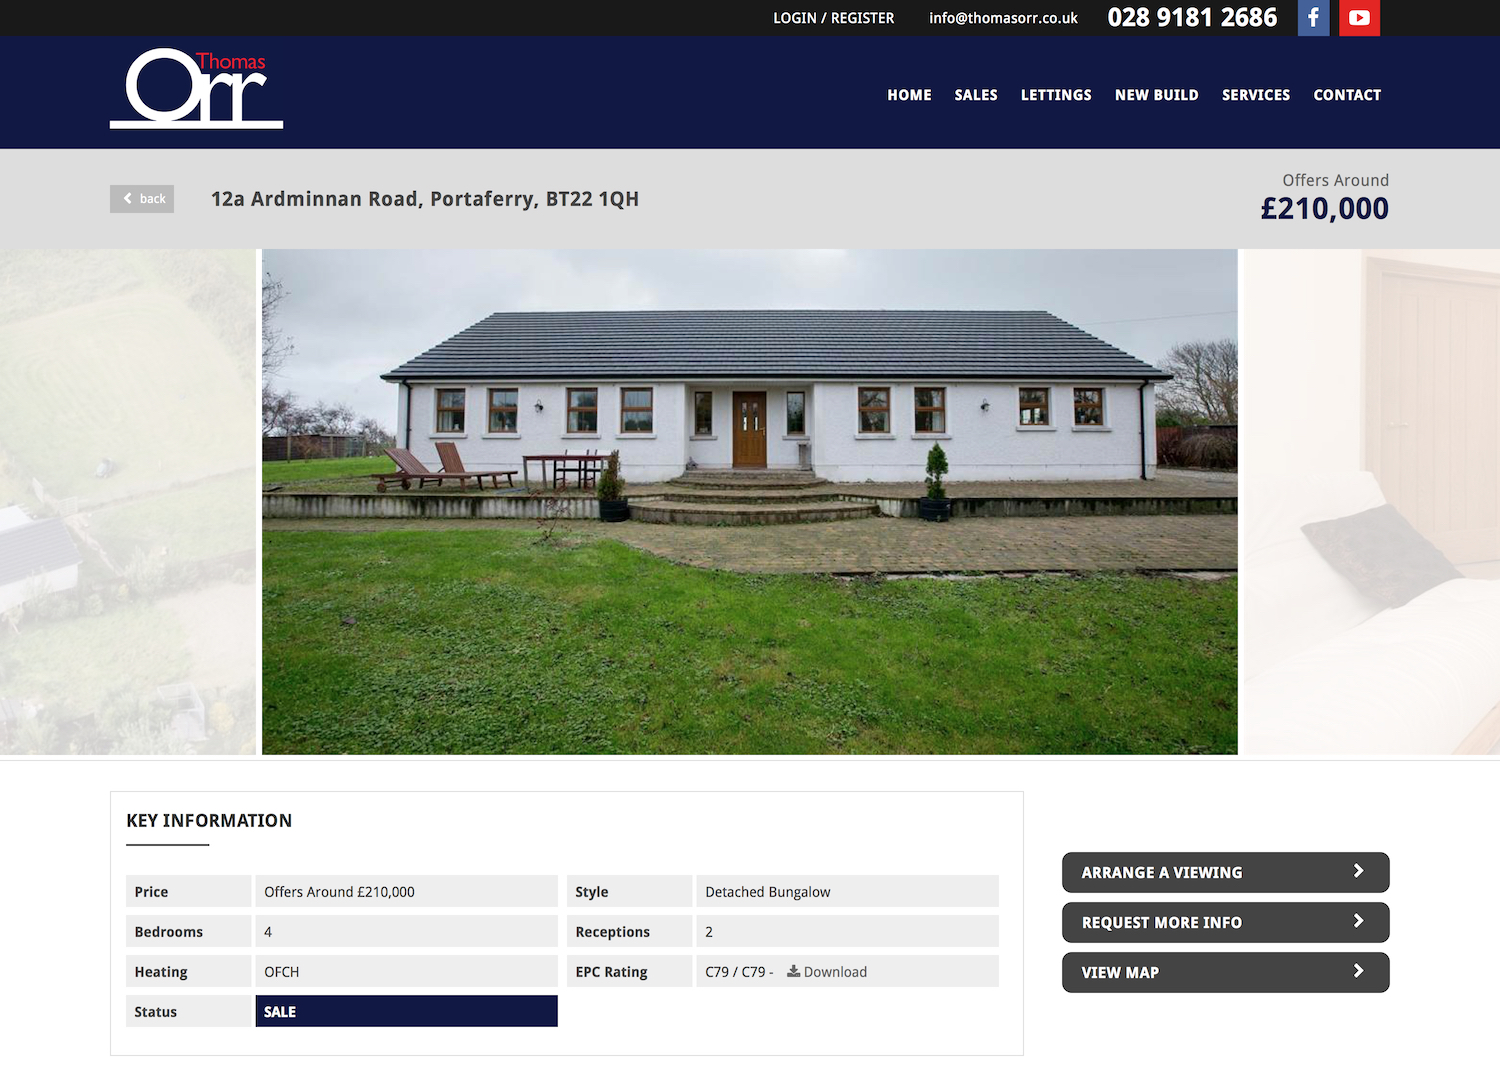 12a Ardminnan Road, Portaferry Property for sale at Thomas Orr agents Northern Ireland